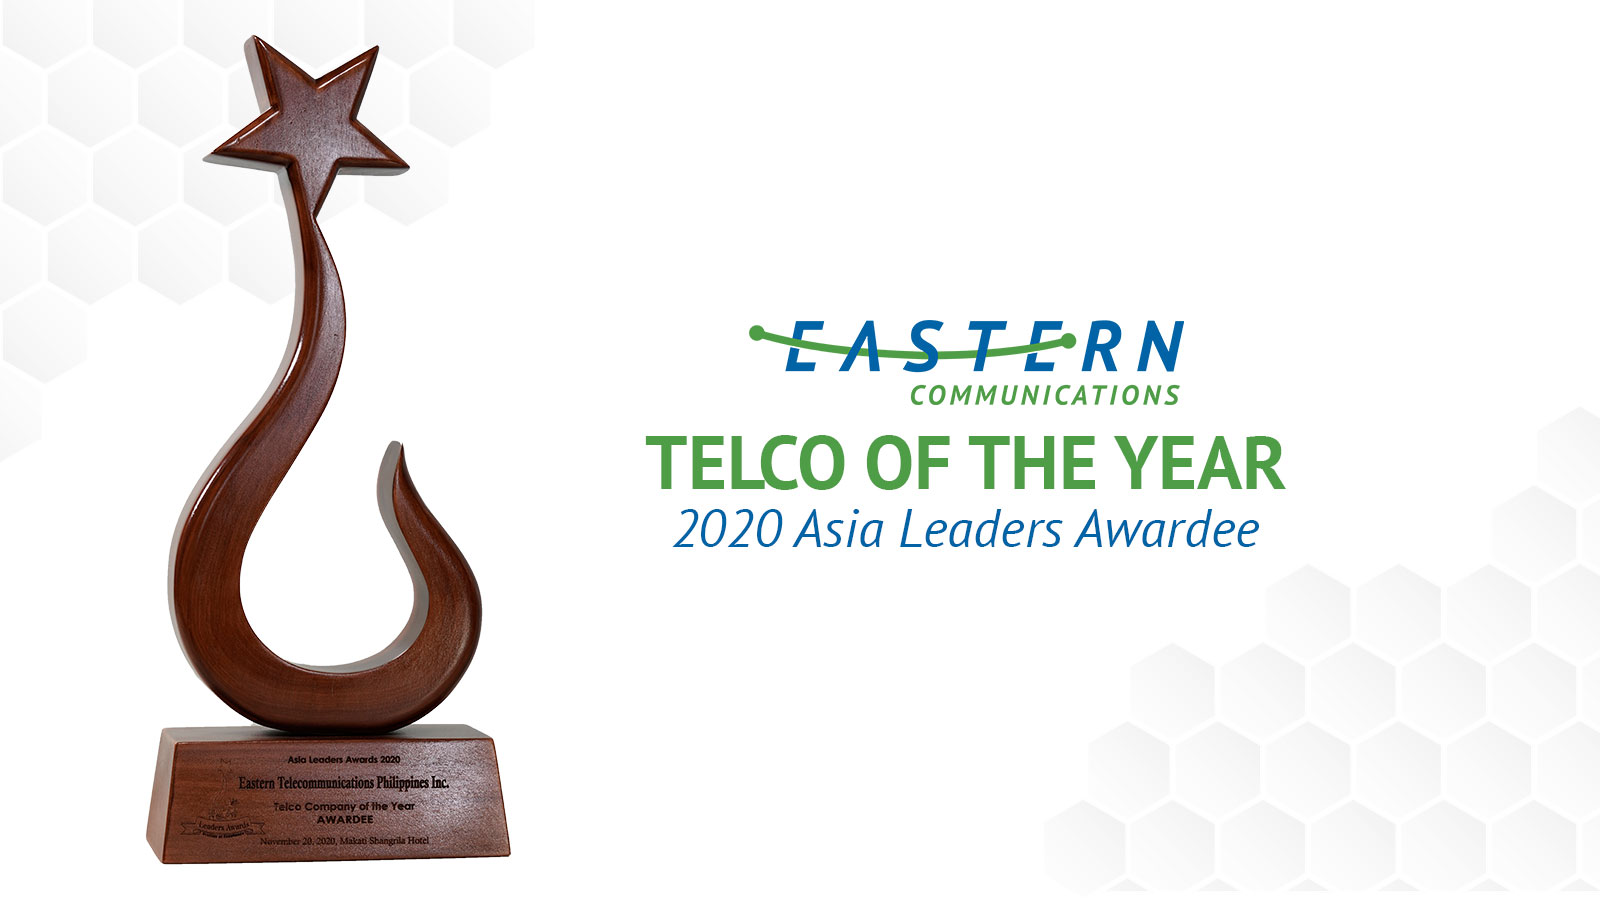 Eastern Communications wins Telco of the Year at Asia Leaders Awards 2020